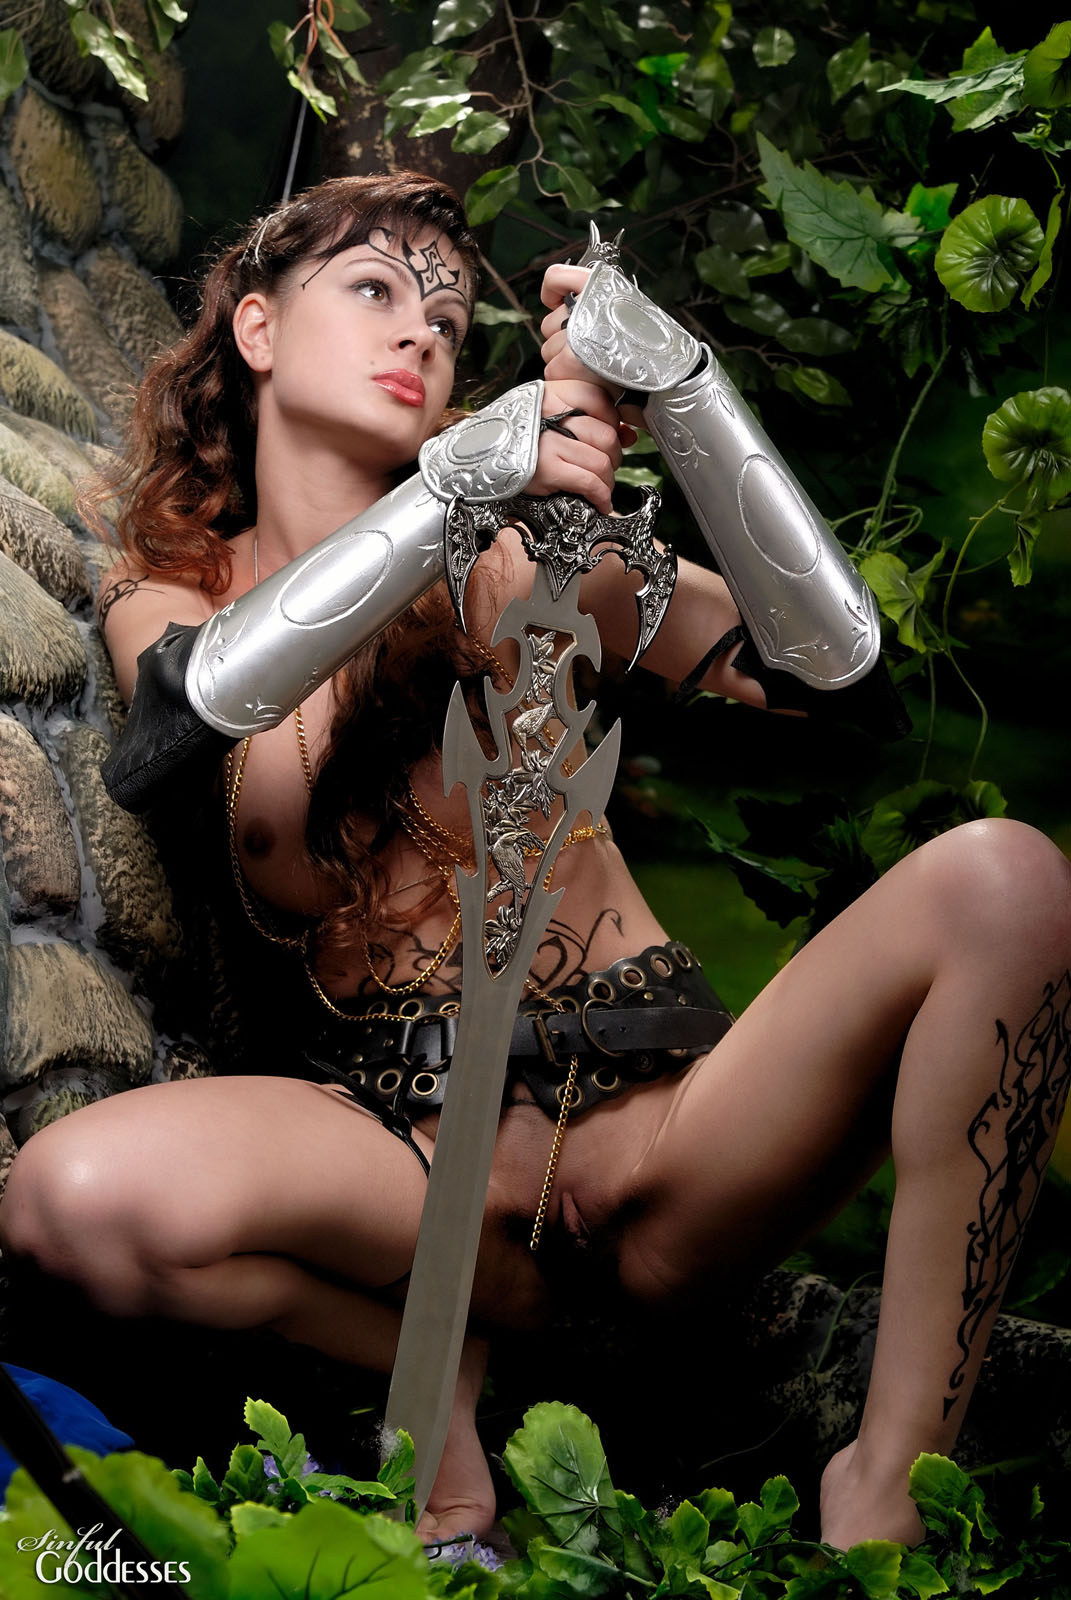 Erotic warrior gallery erotic uncensored stripper